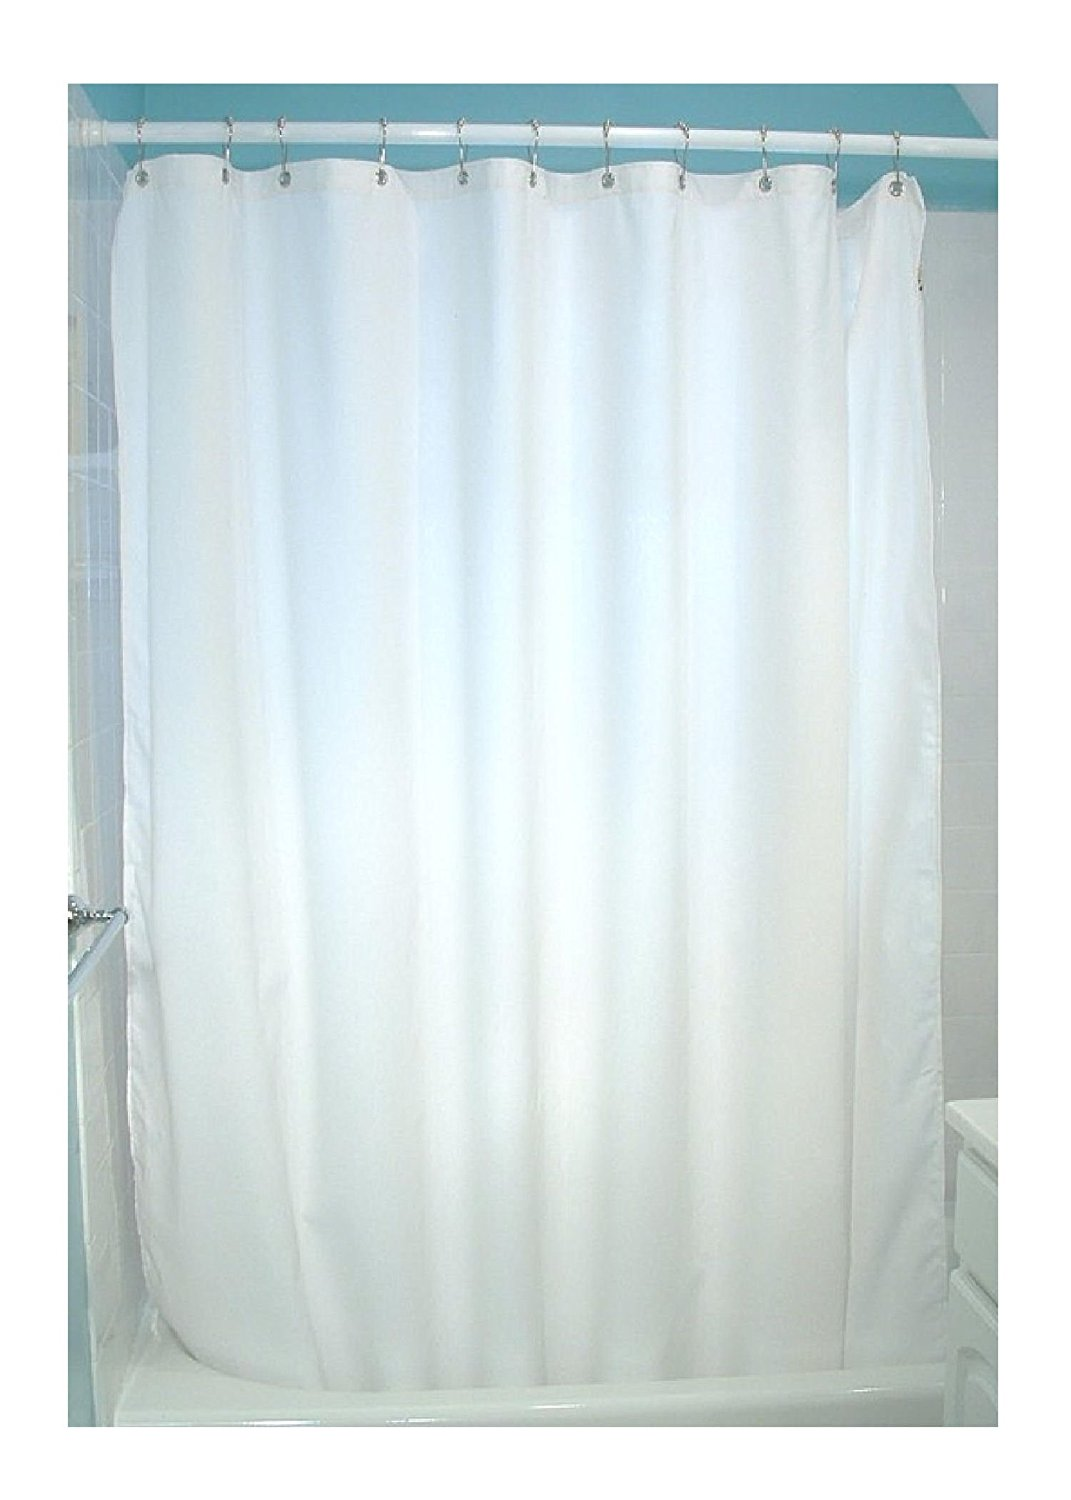 Incroyable Non Toxic Shower Curtain   Bean Products Cotton Shower Curtain